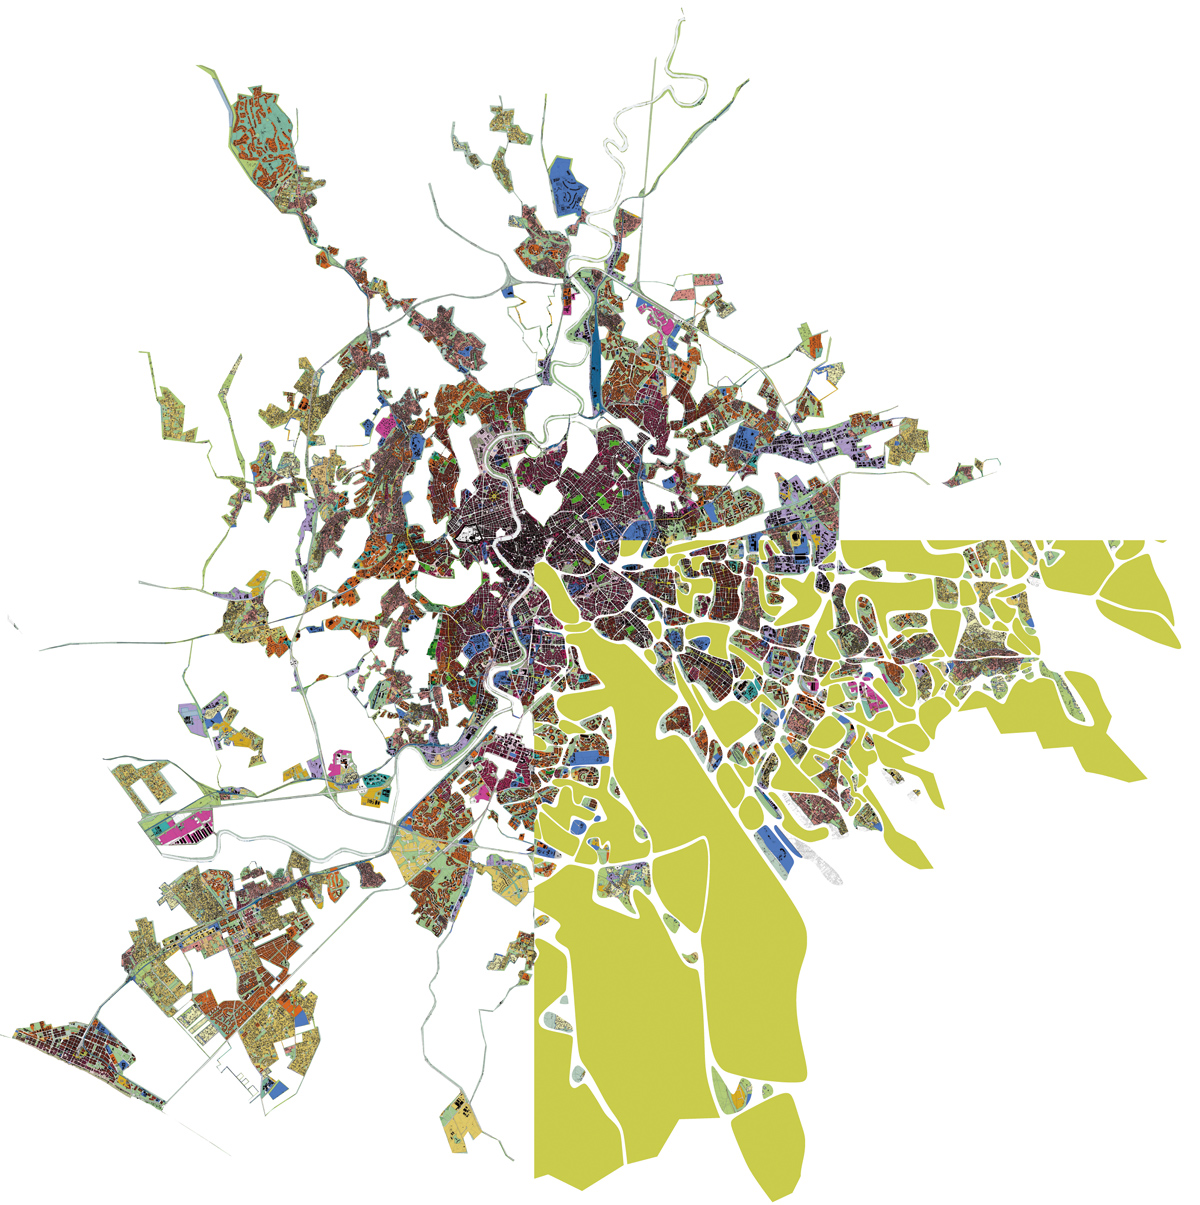 Labics, The islands and the emerging structure, Roma